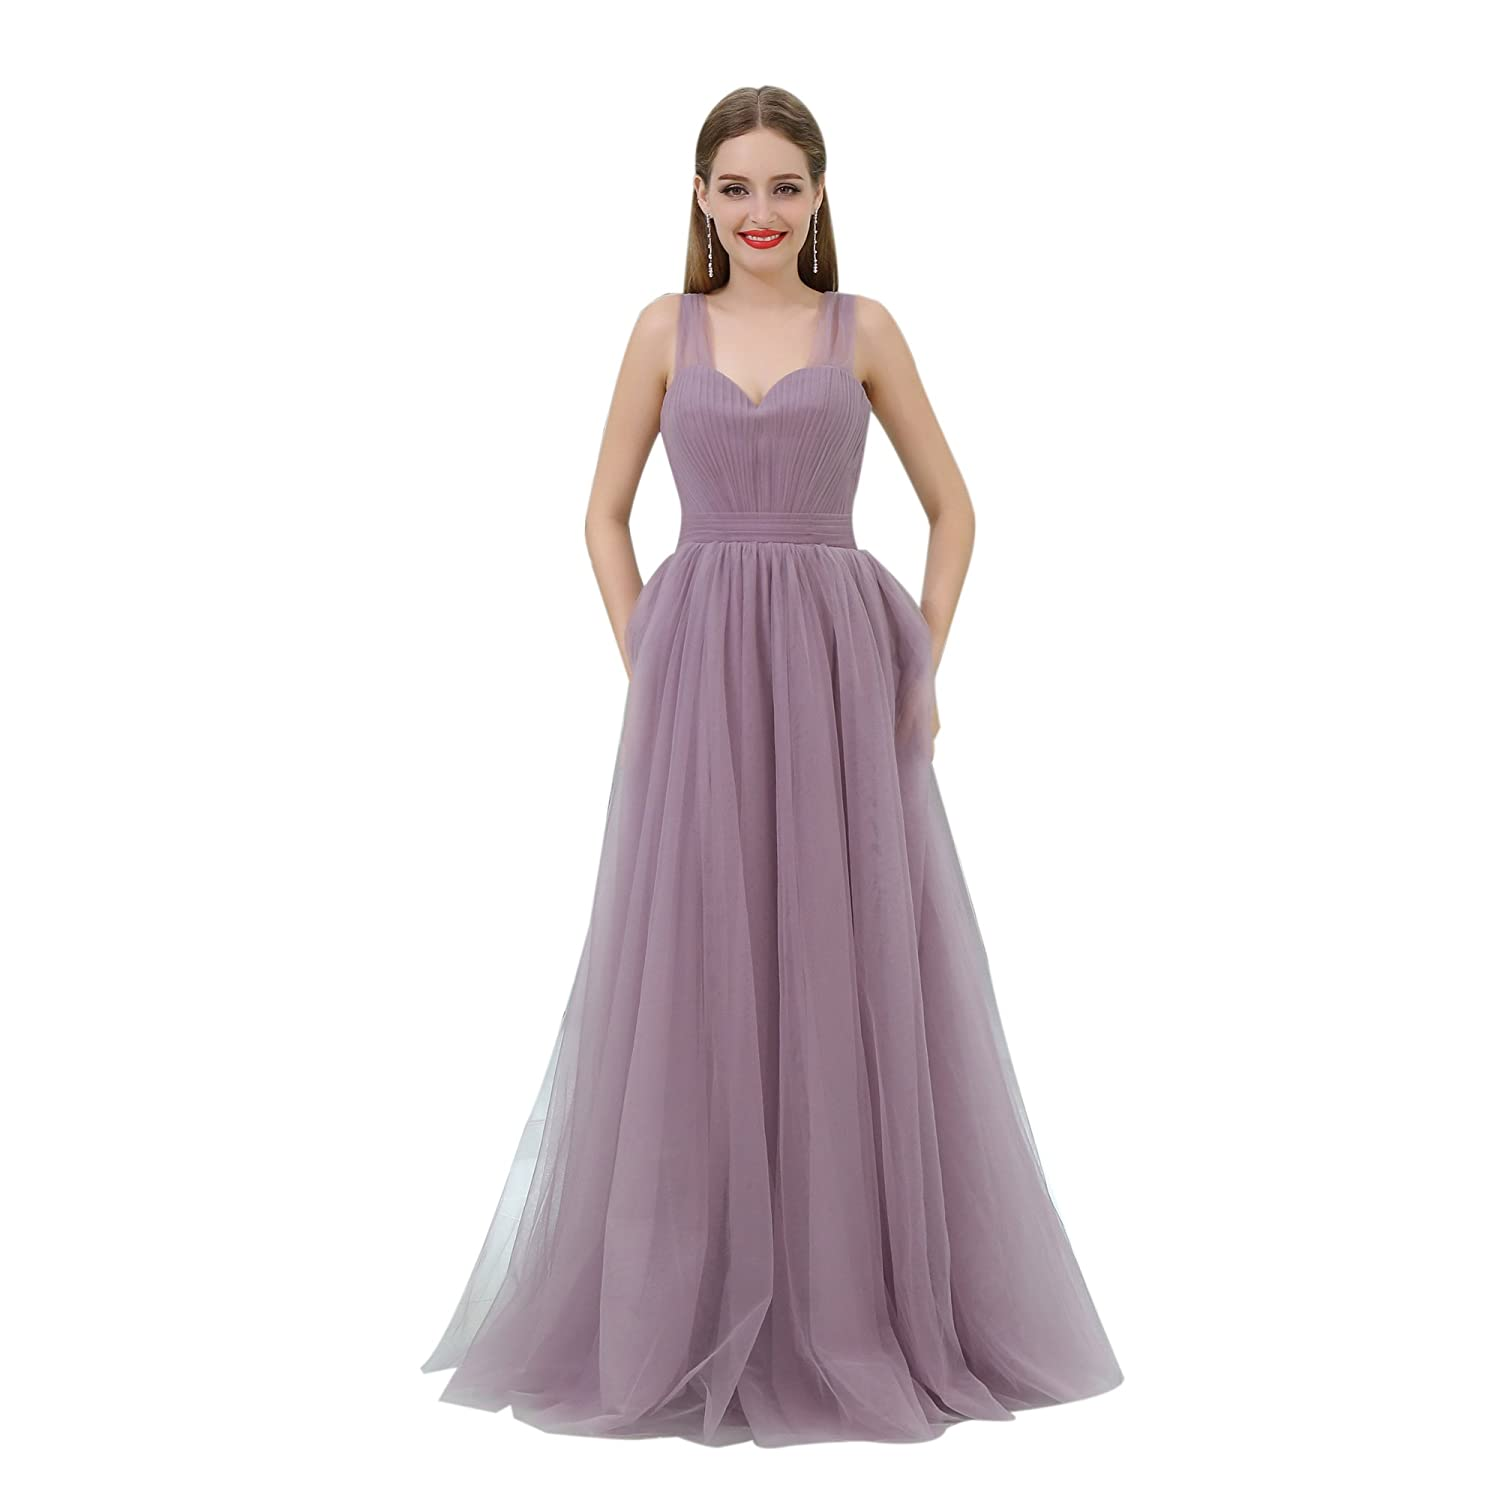 98109de755bbe Meibri Long Light Purple Gown Dress For Evening Party Tulle Prom Dress at  Amazon Women's Clothing store: